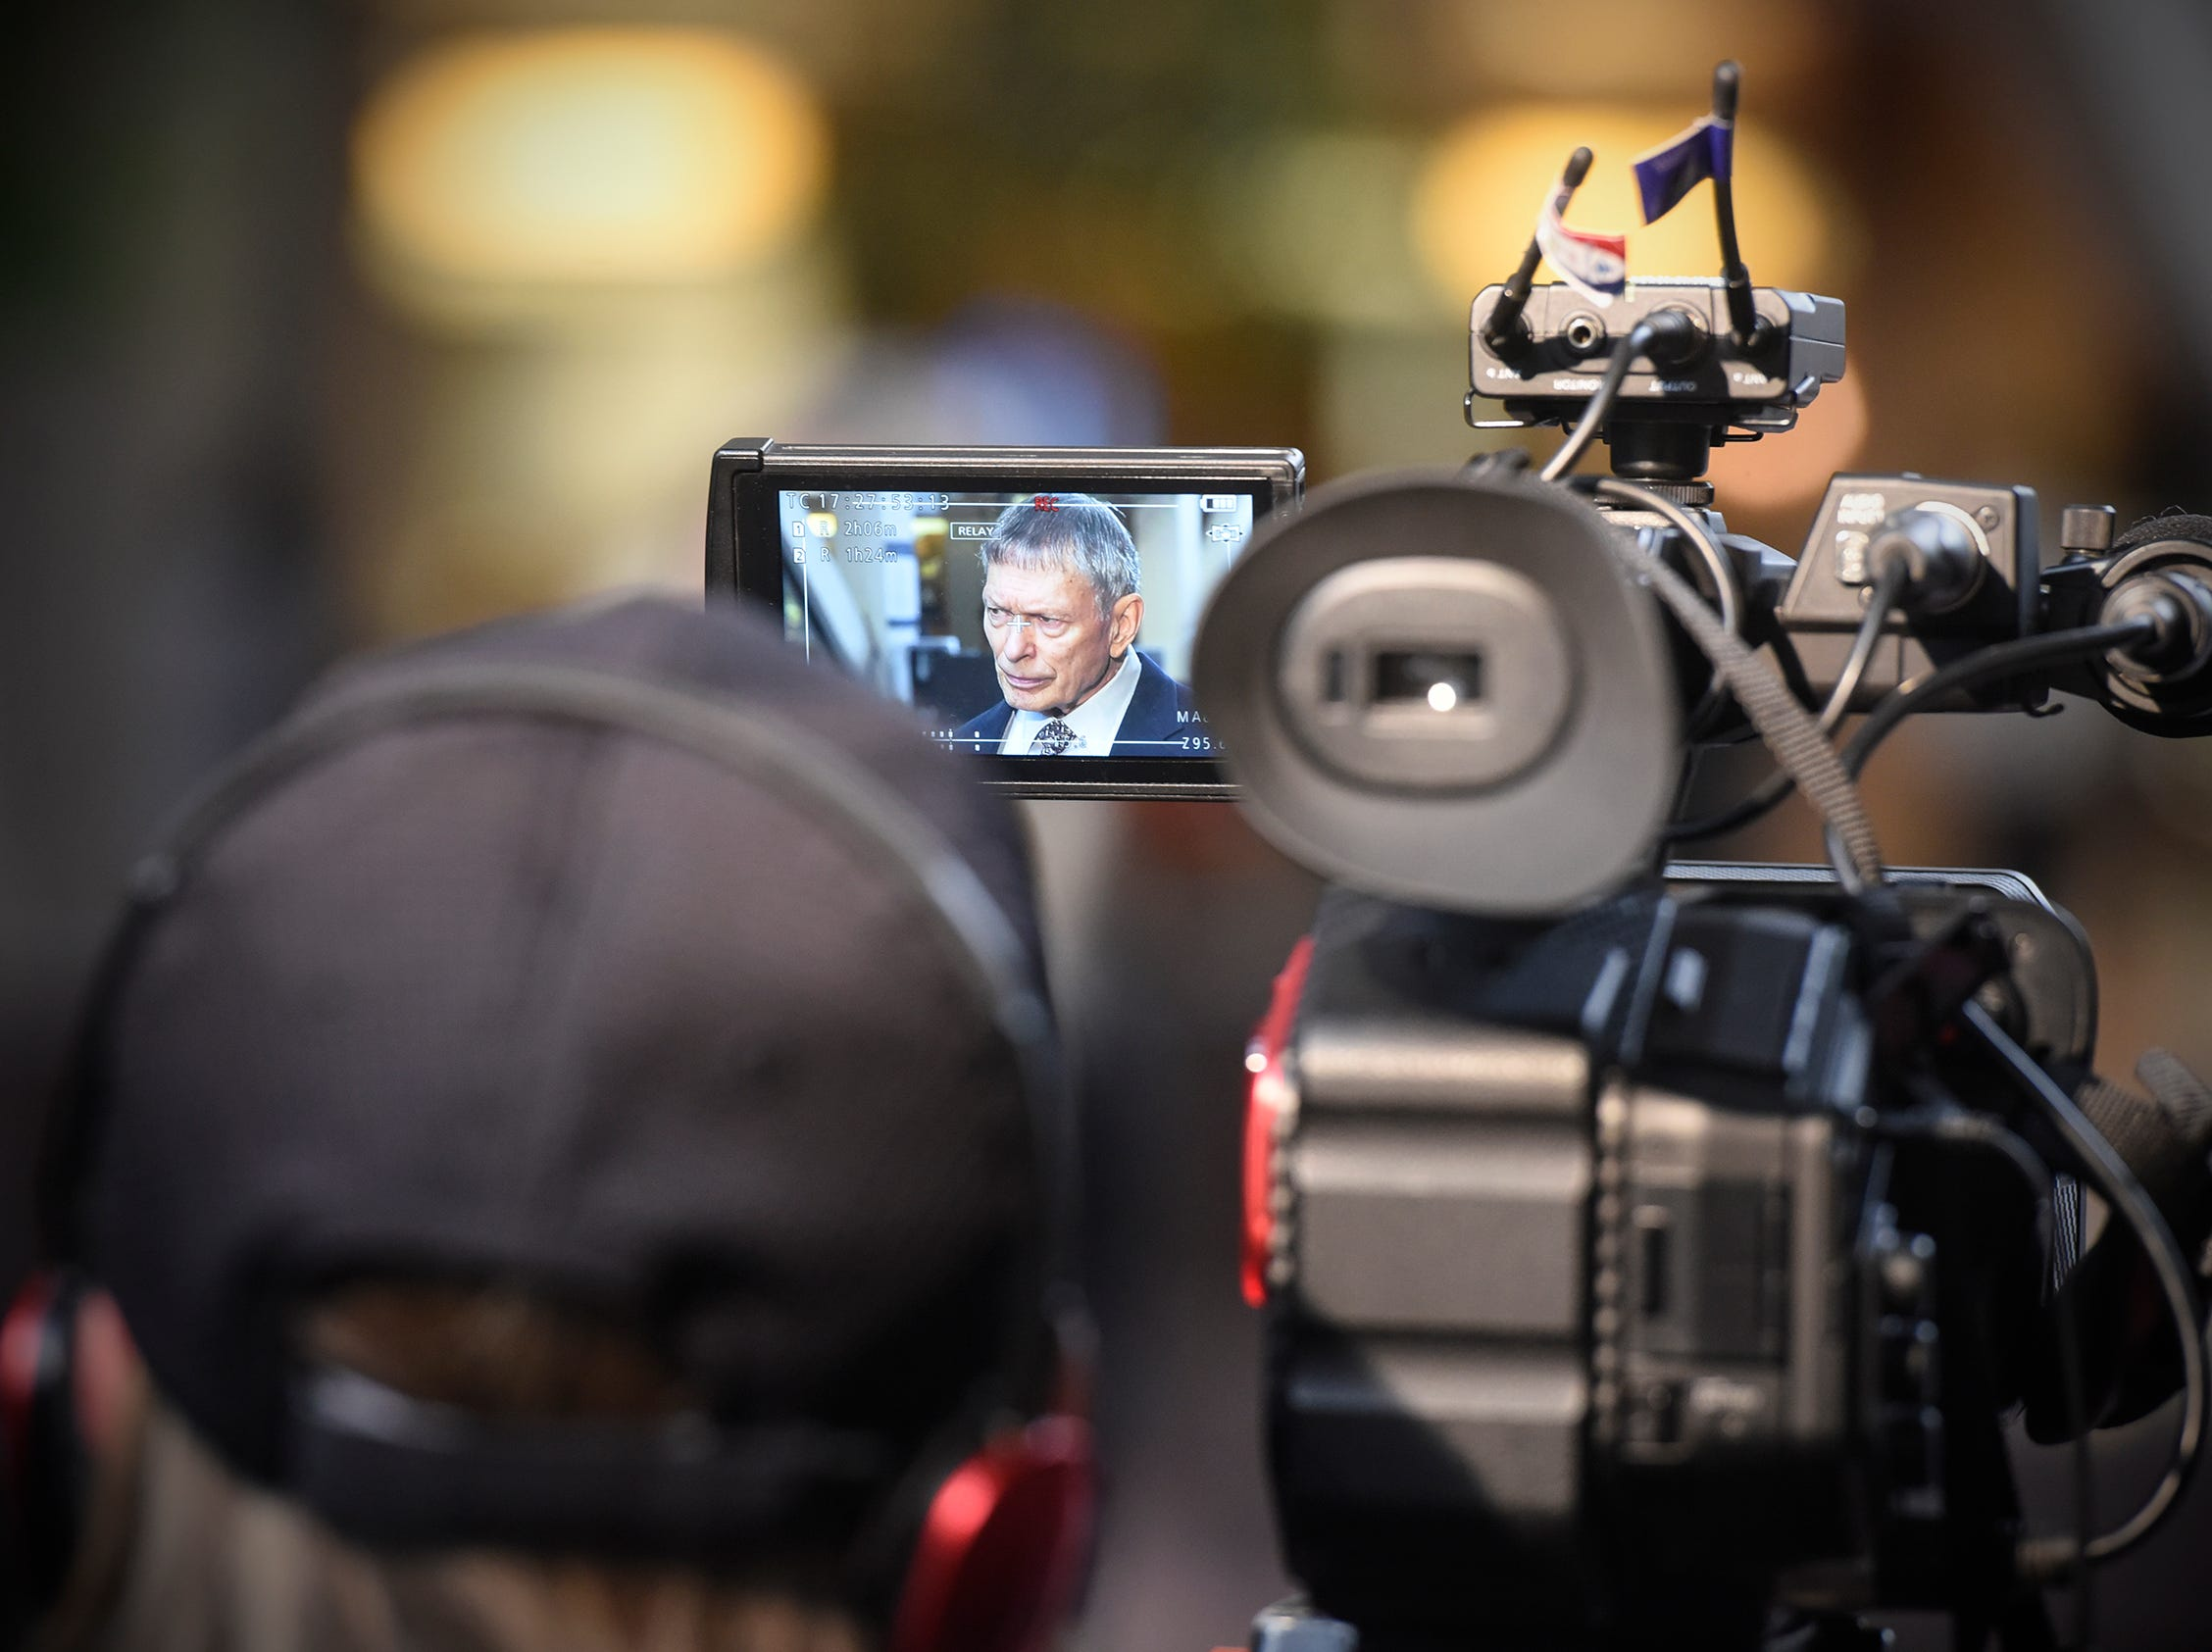 Camera crews record as Former FBI agent Steve Gilkerson answers questions during a press conference Tuesday, Oct. 2, at the Hennepin County Government Center in Minneapolis.